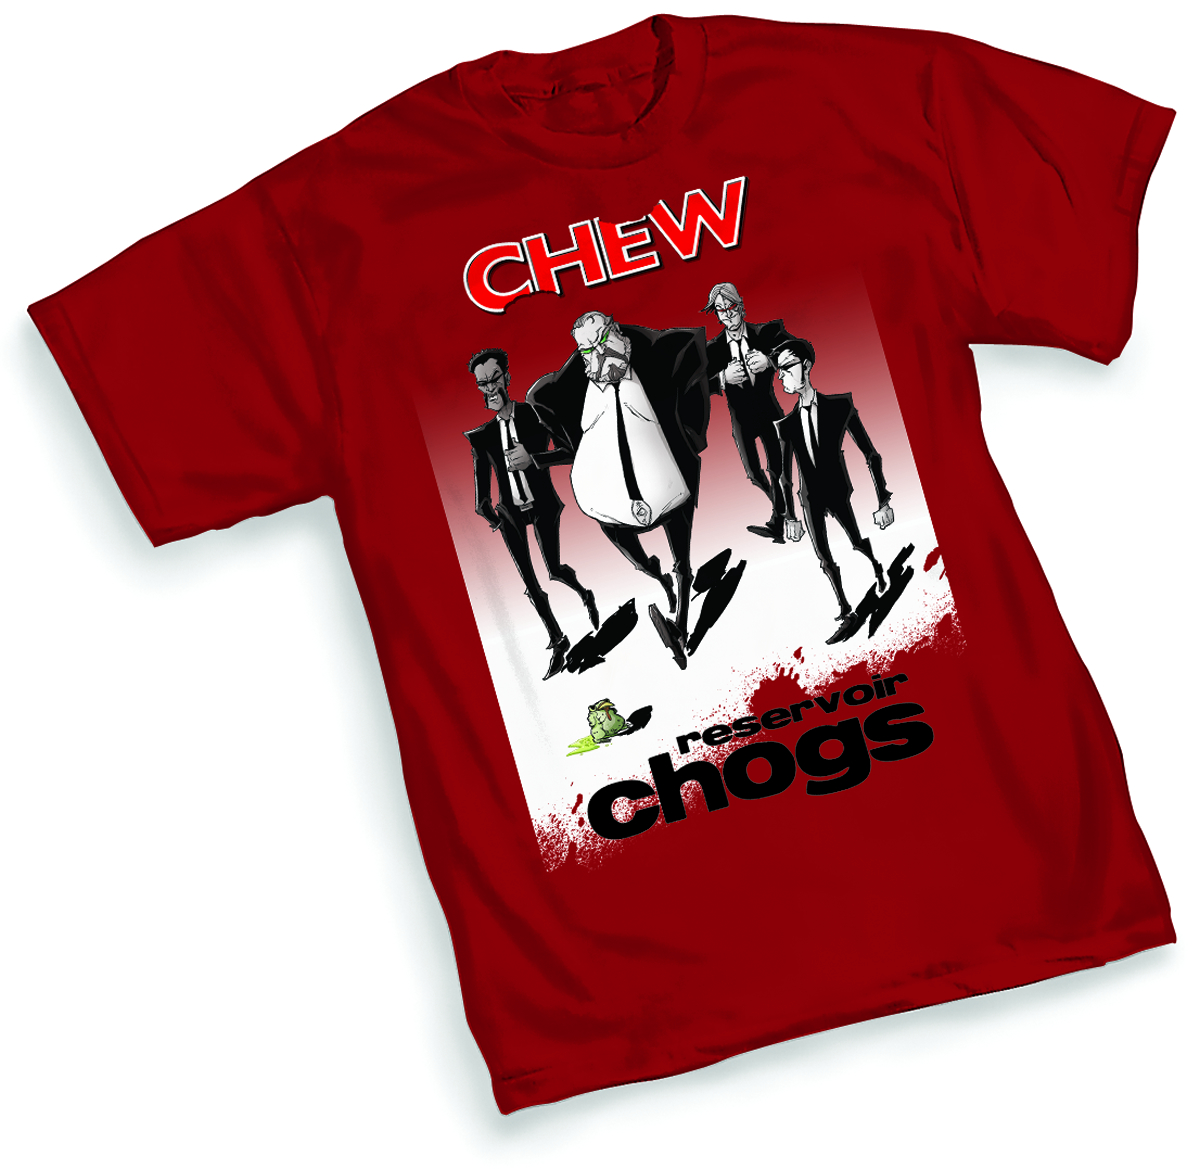 CHEW RESERVOIR CHOGS BY GUILLORY T/S LG